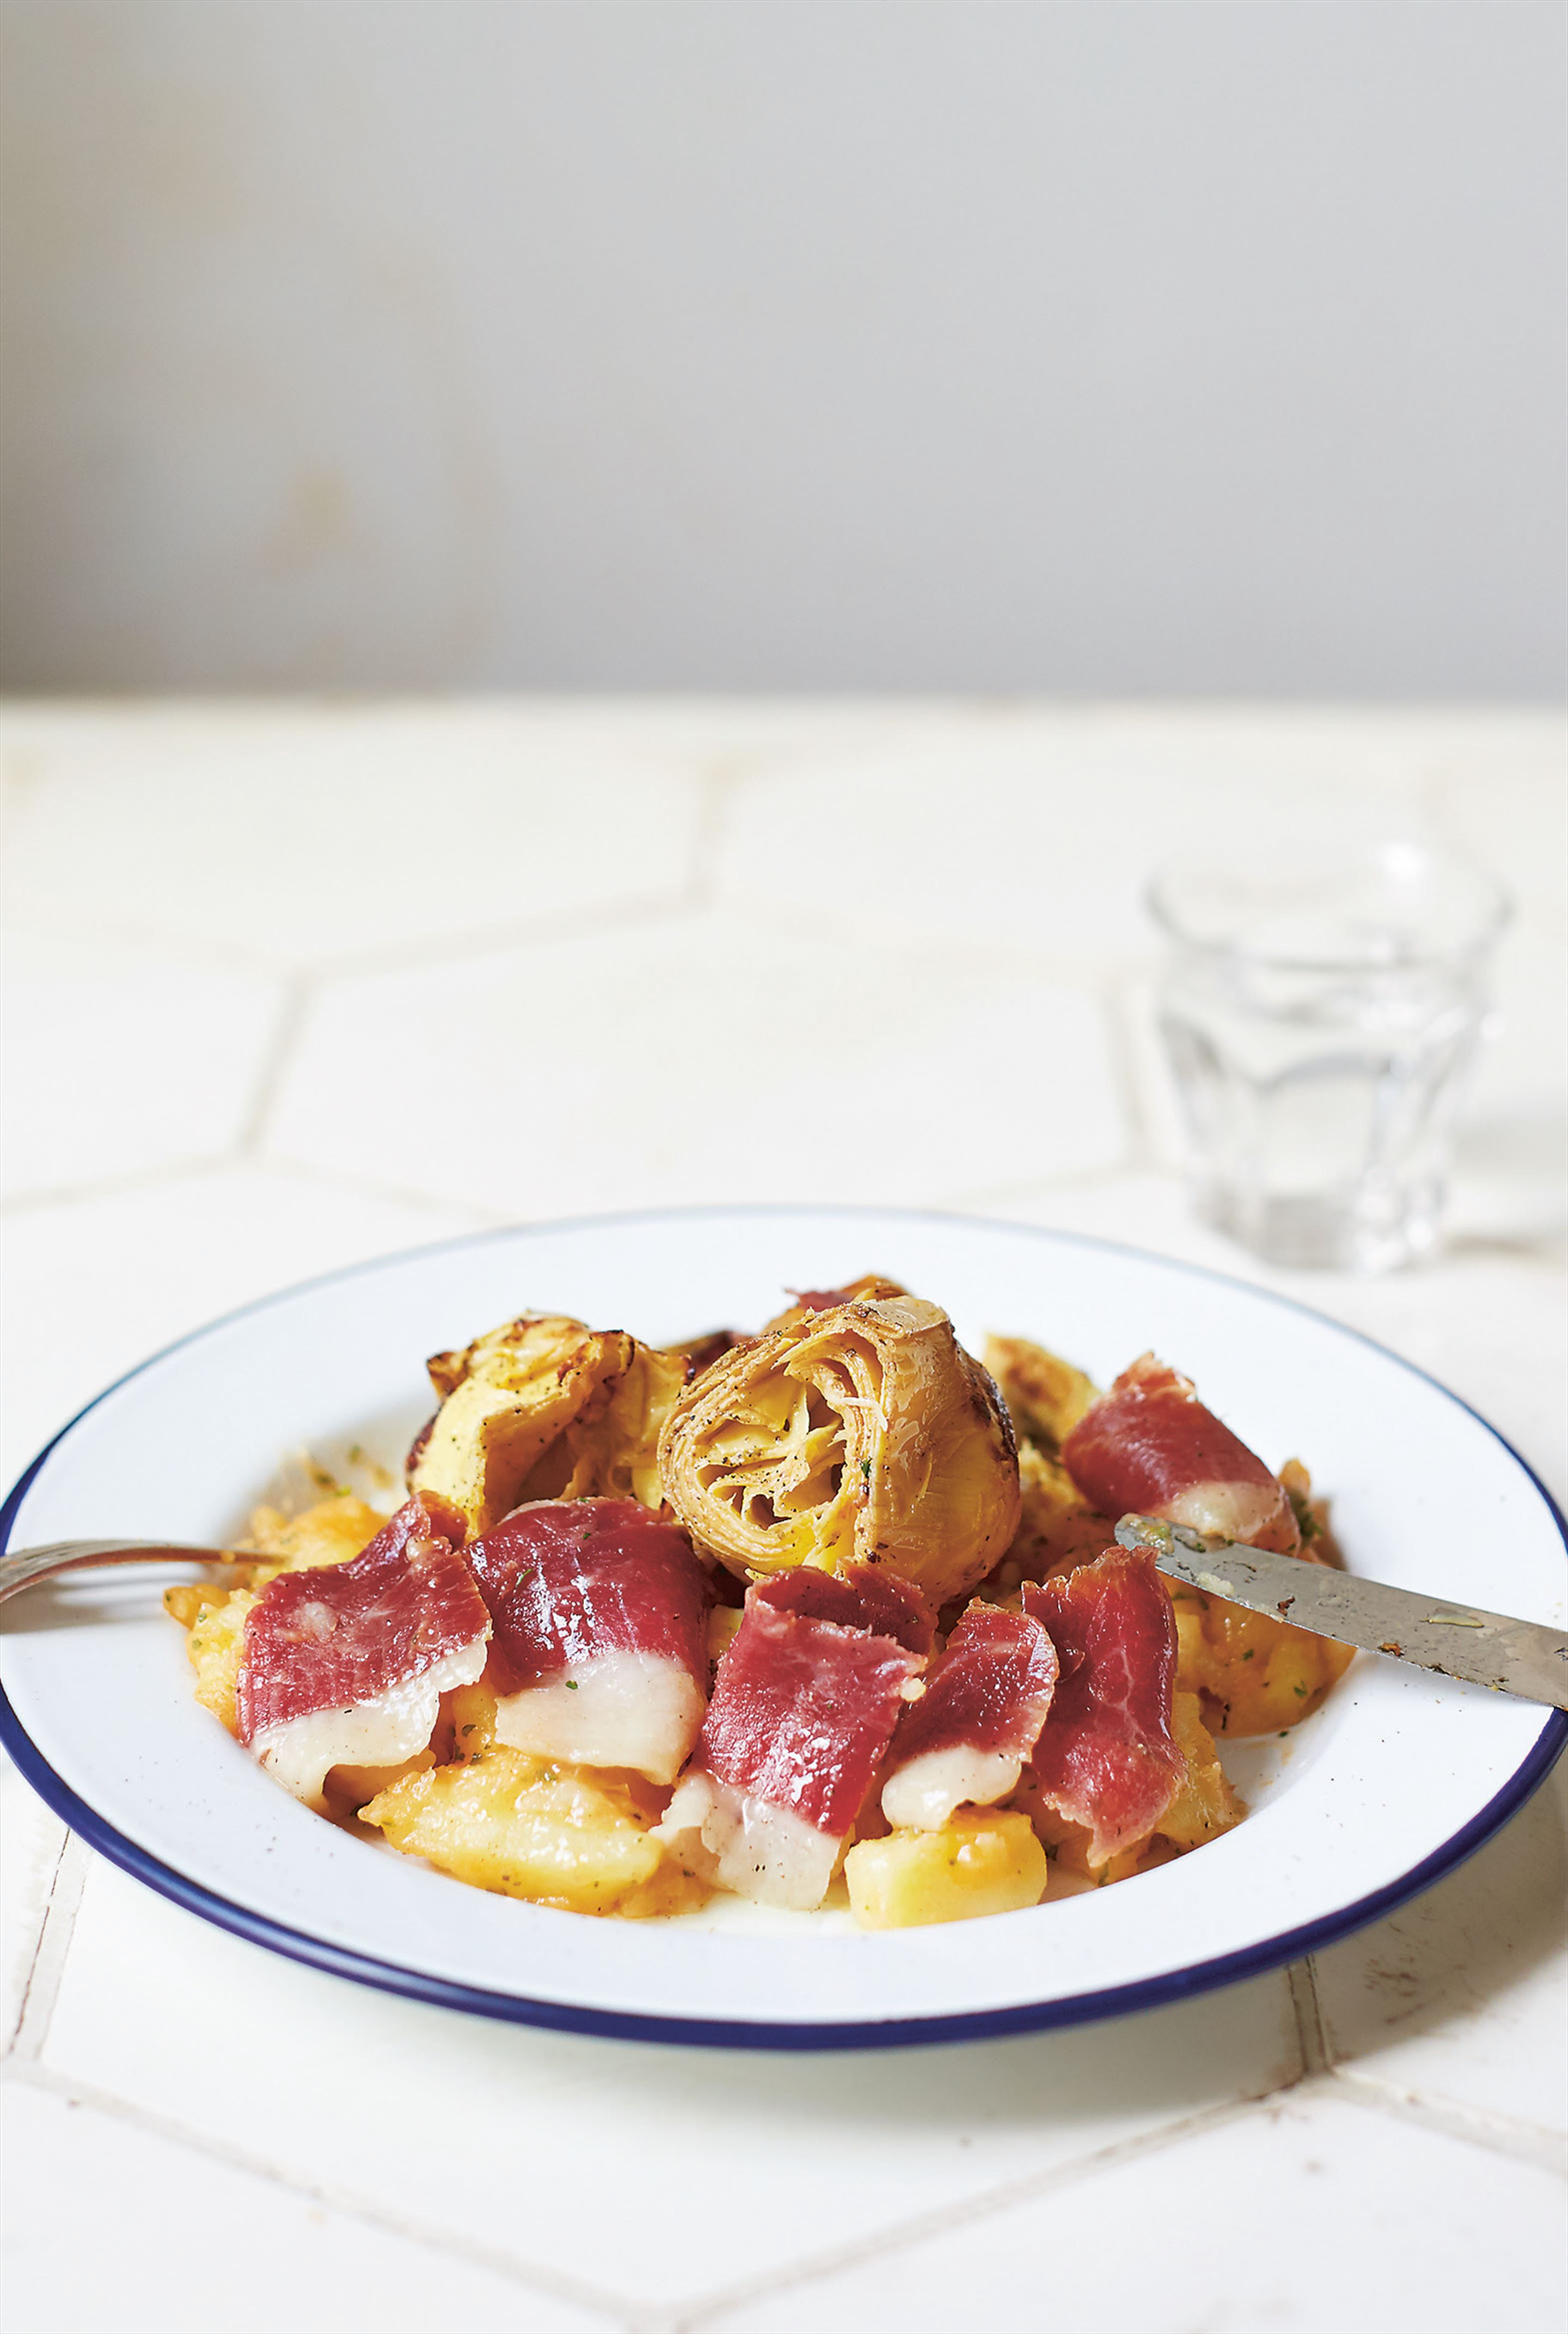 Potato, artichoke and jamón